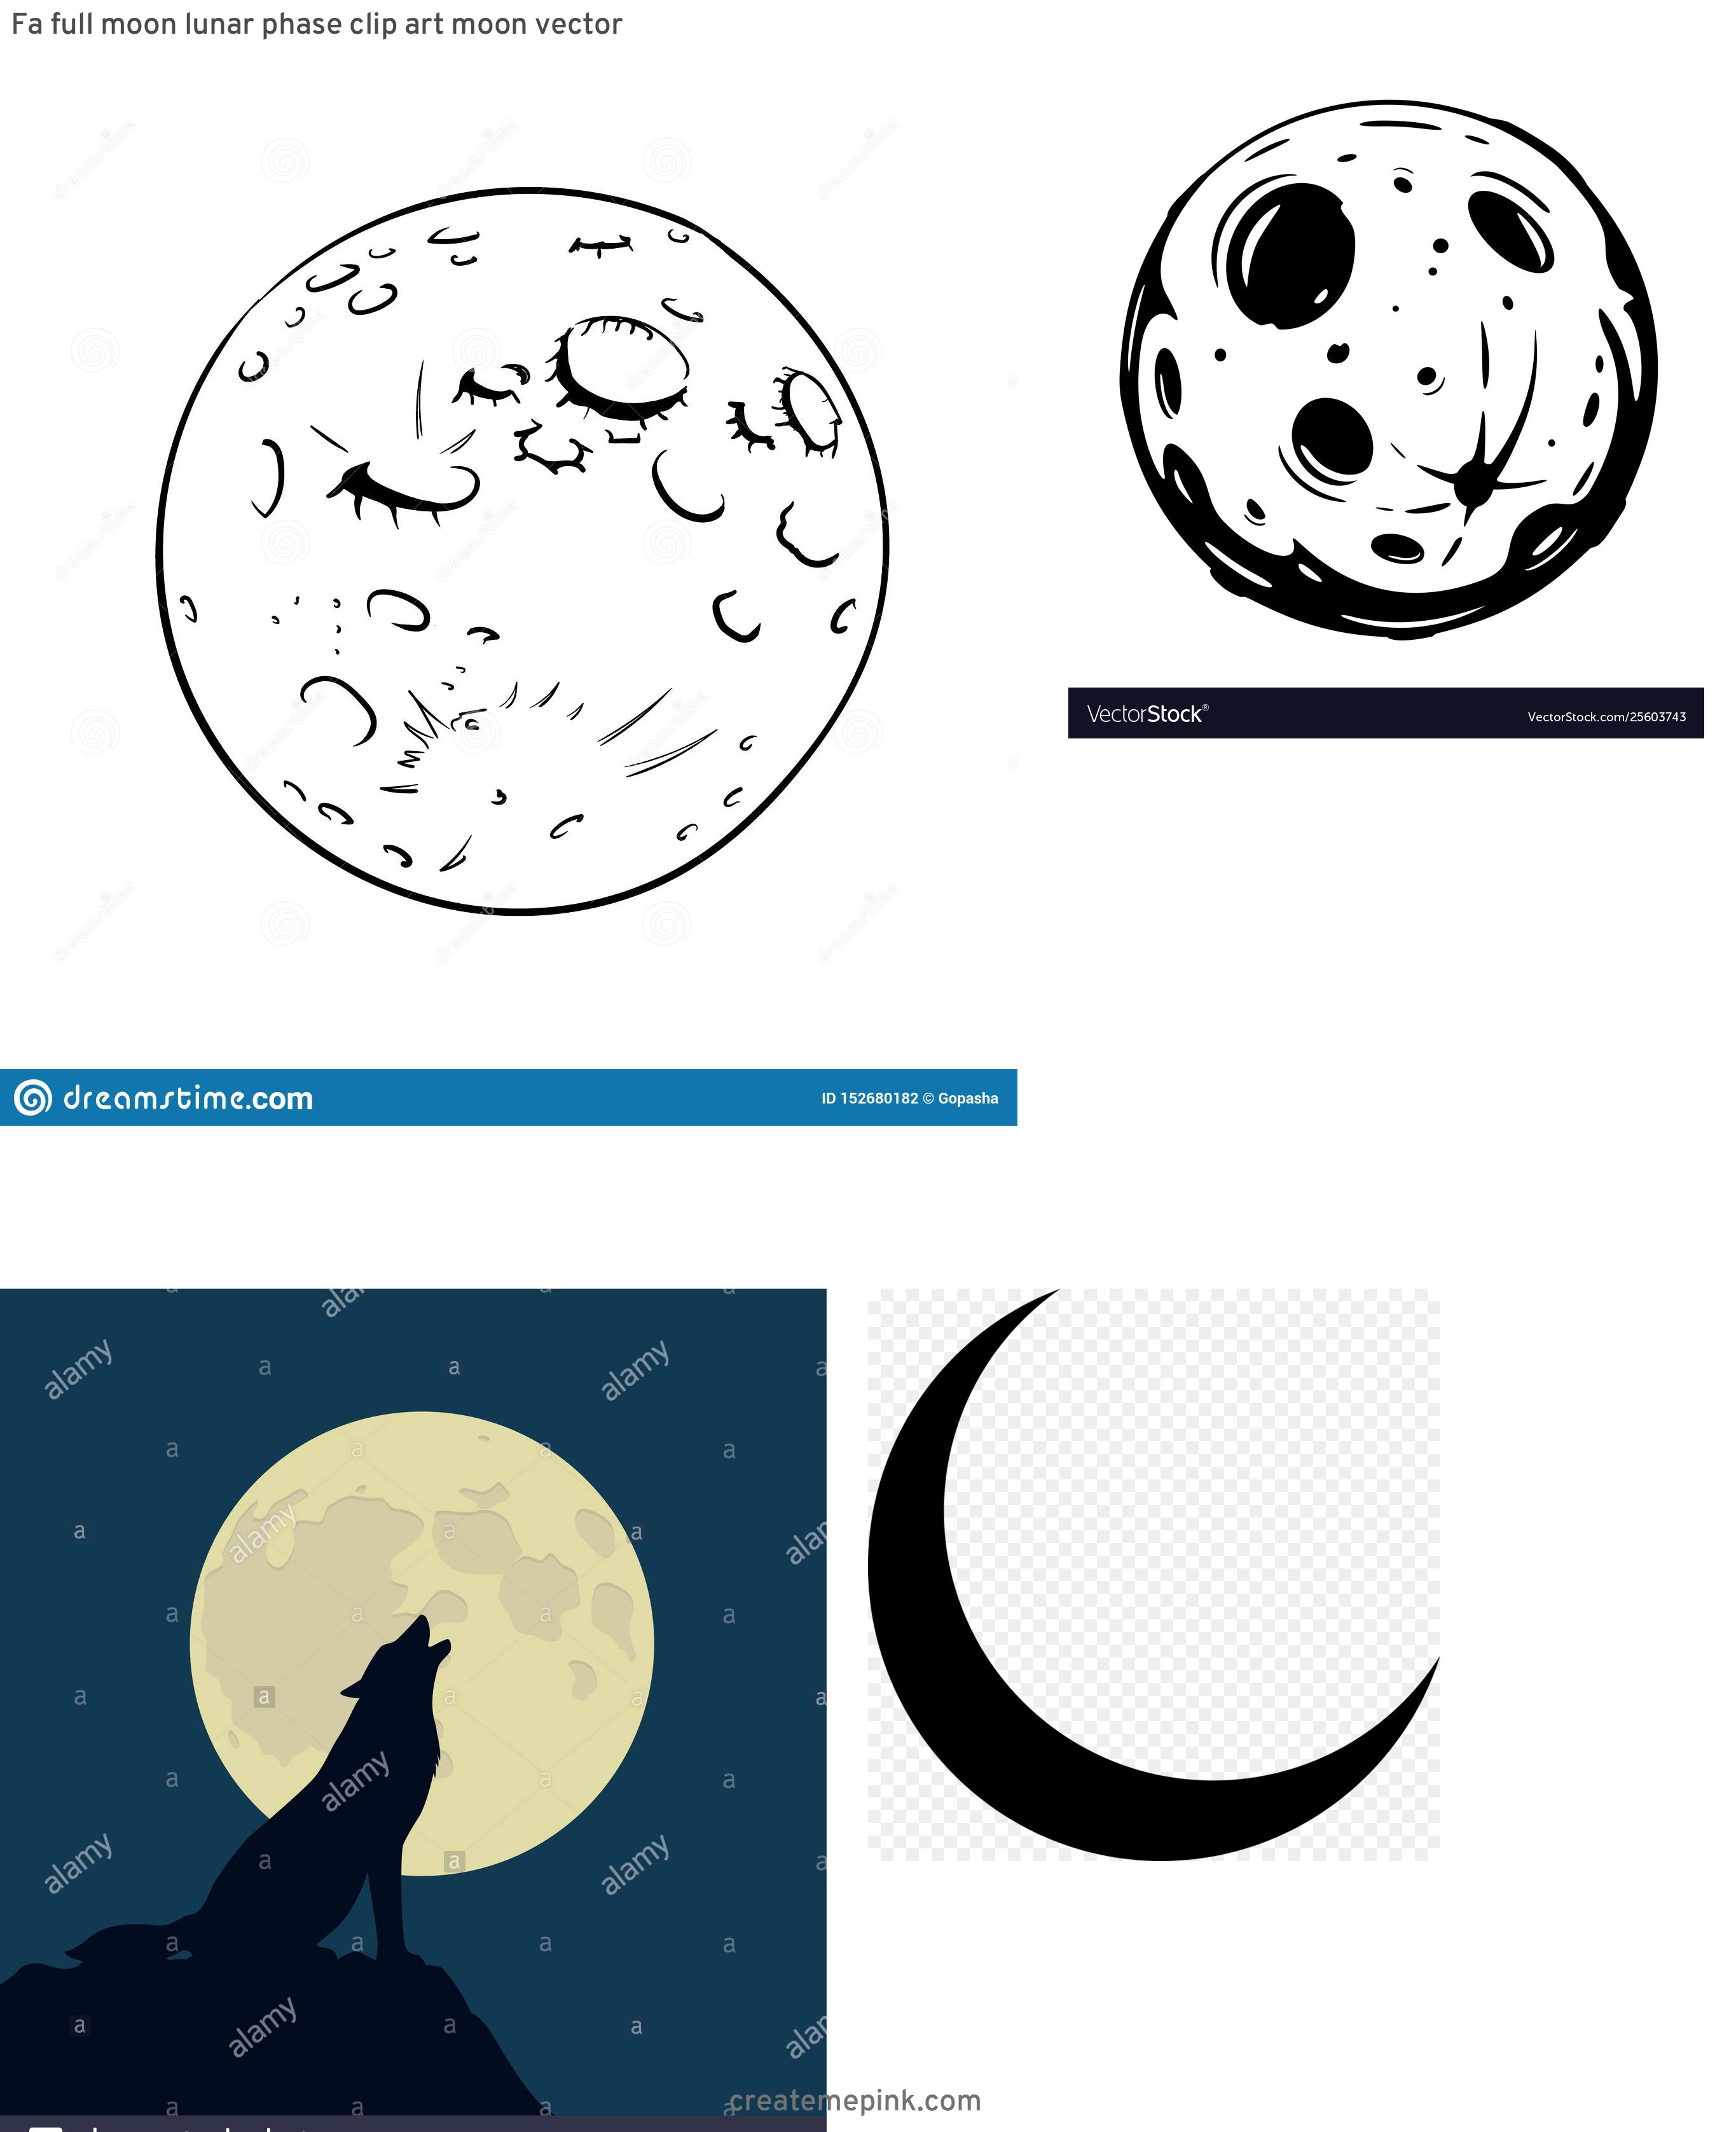 Full Moon Vector Art: Fa Full Moon Lunar Phase Clip Art Moon Vector